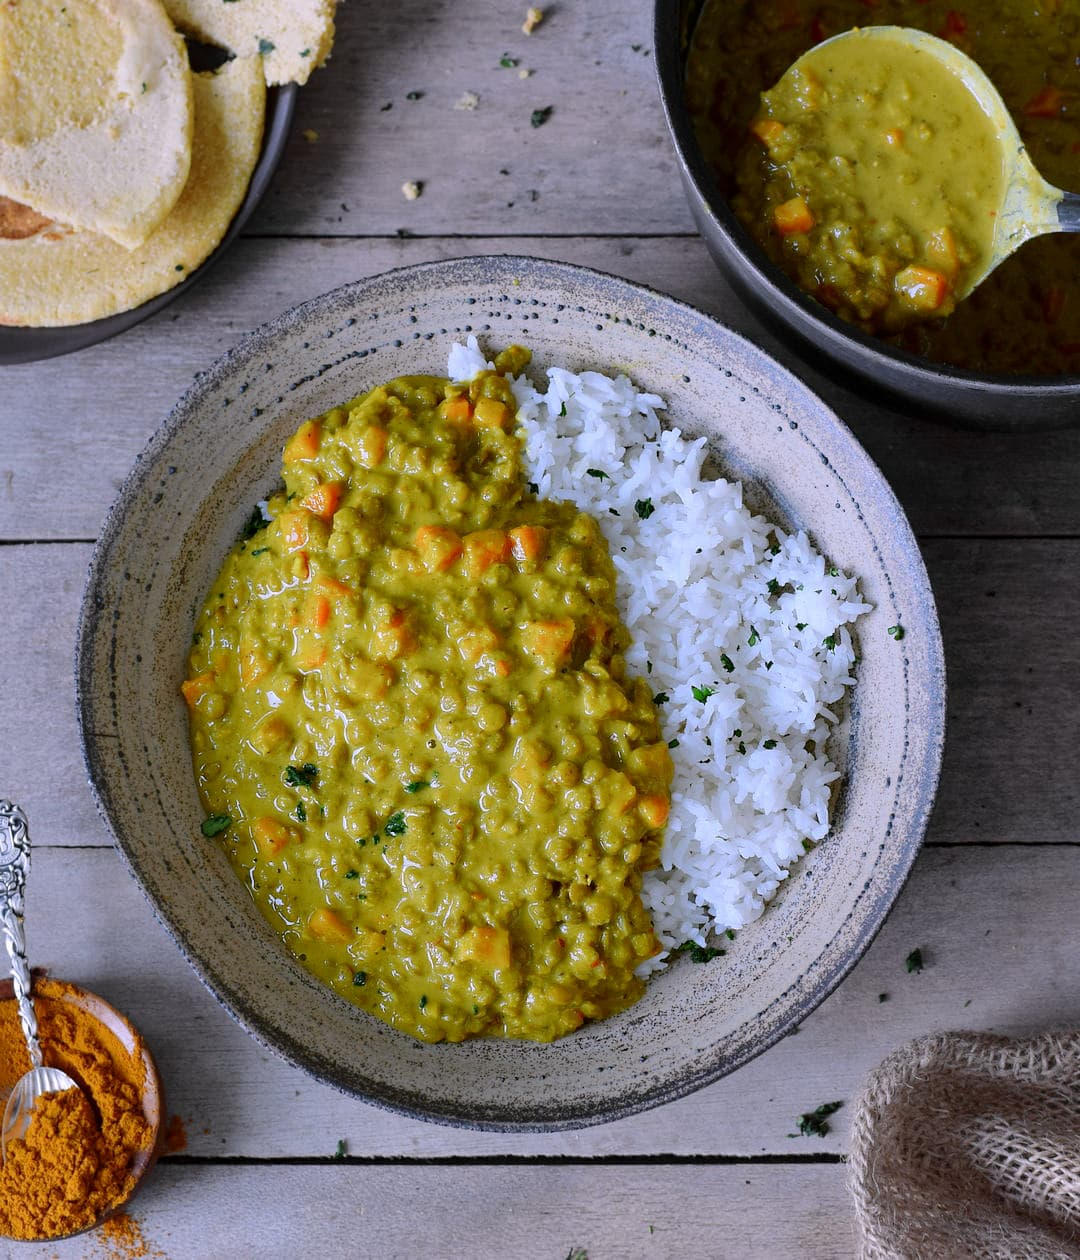 lentil dal with carrots and rice on a plate